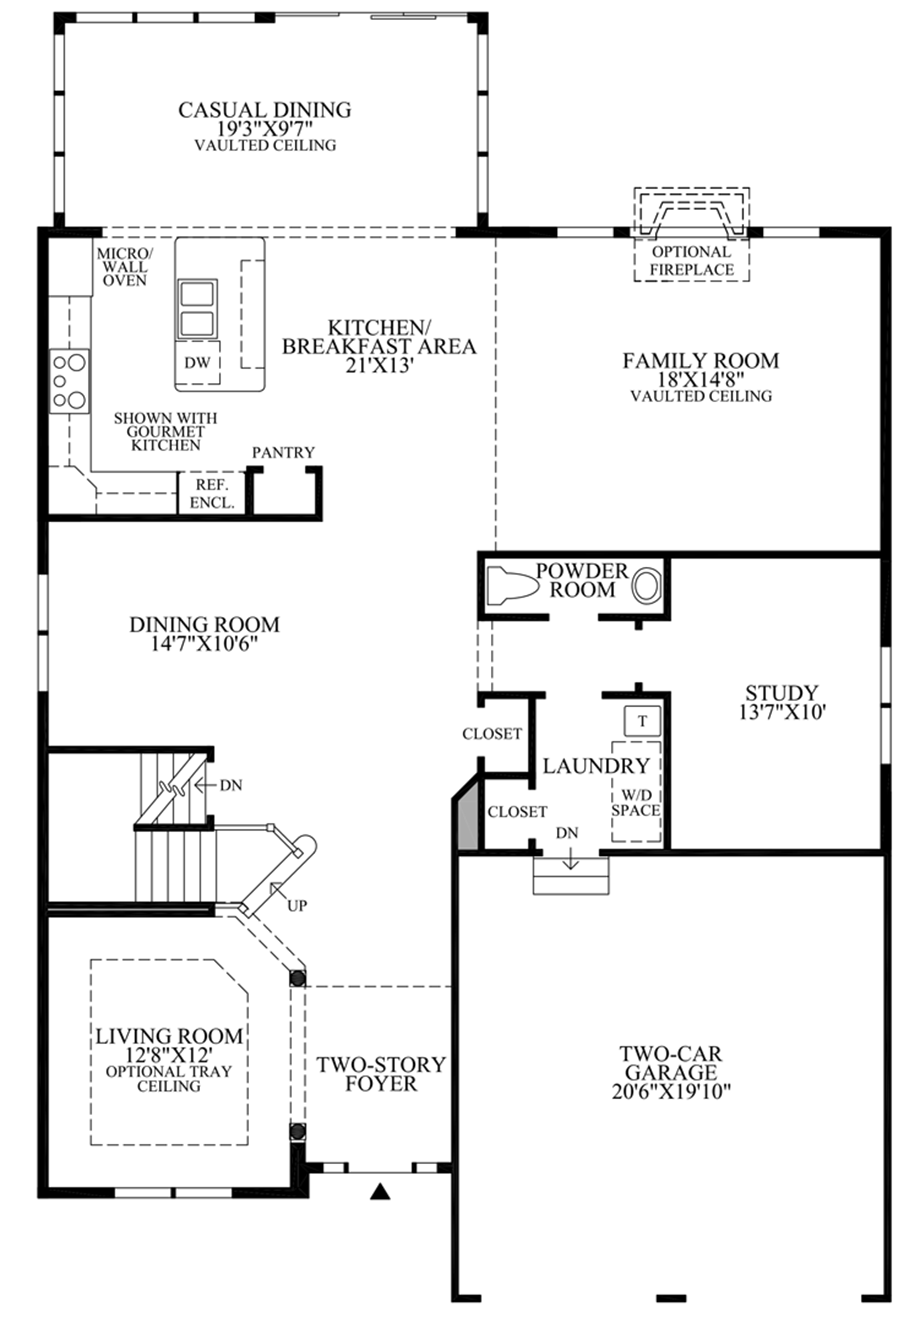 Optional Expanded Gourmet Kitchen Layout Floor Plan